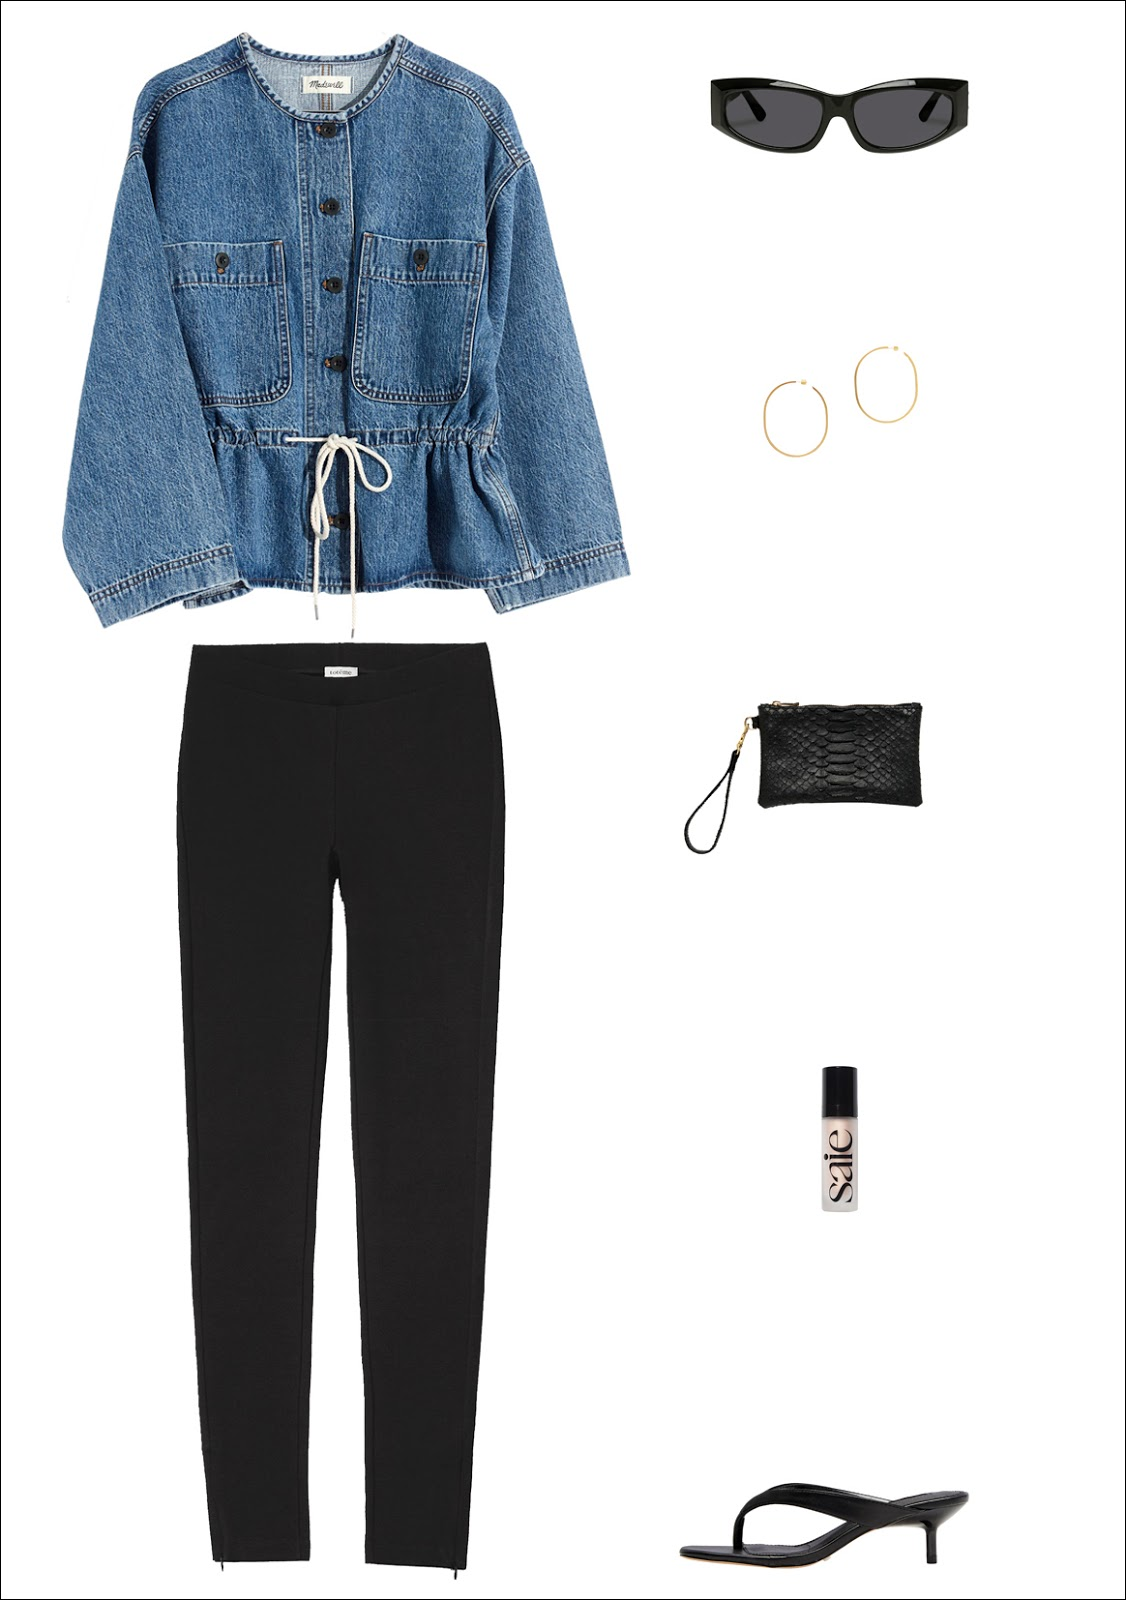 Transitional Fall Outfit Idea —cool denim jacket, '90s-inspired sunglasses, thin hoop earrings, a chic wristlet clutch, elevated Toteme leggings, and flip-flop heels